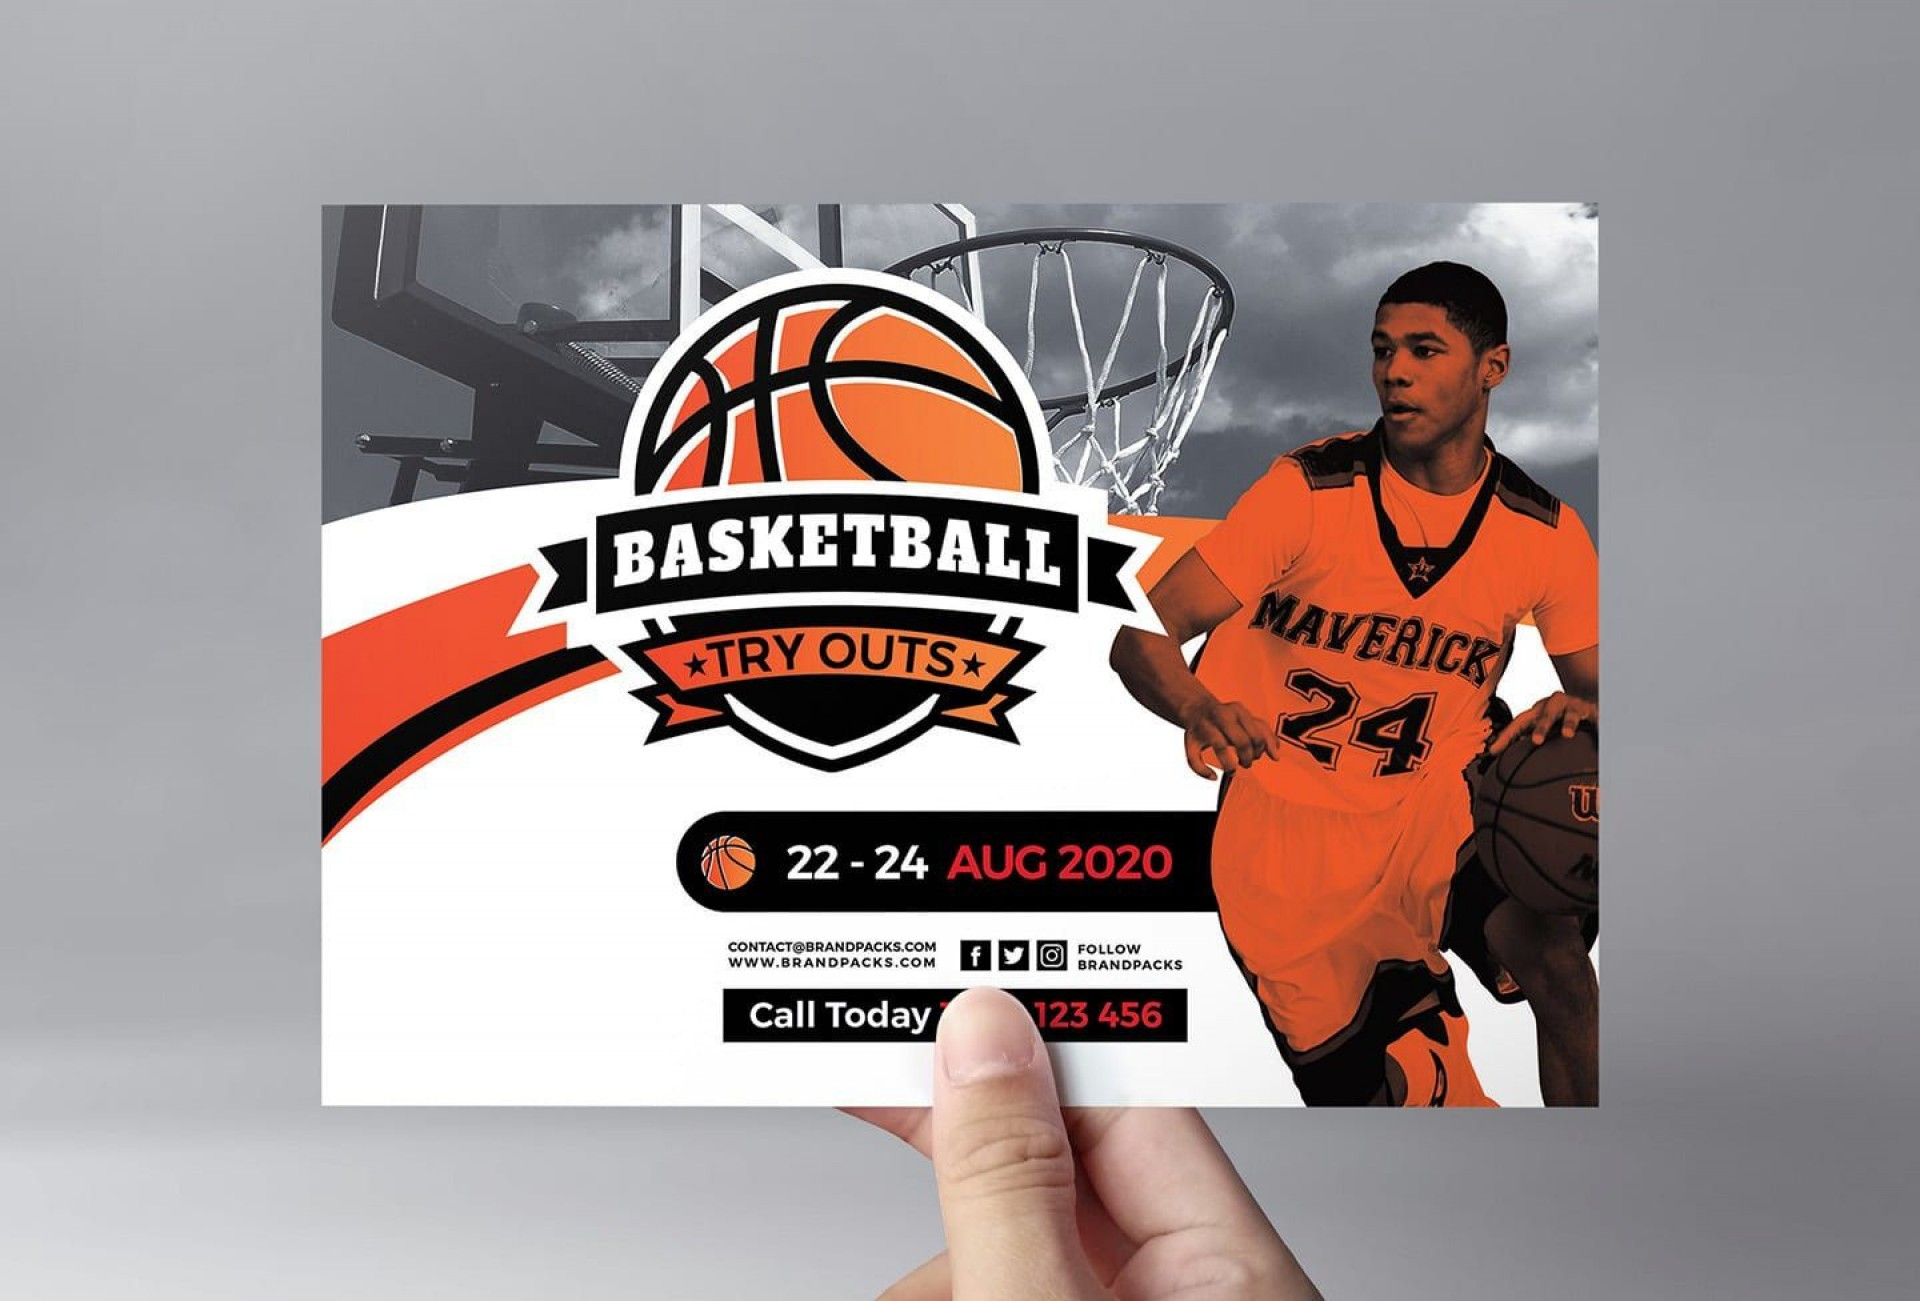 005 Formidable Free Basketball Flyer Template Idea  Game 3 On Tournament Word1920